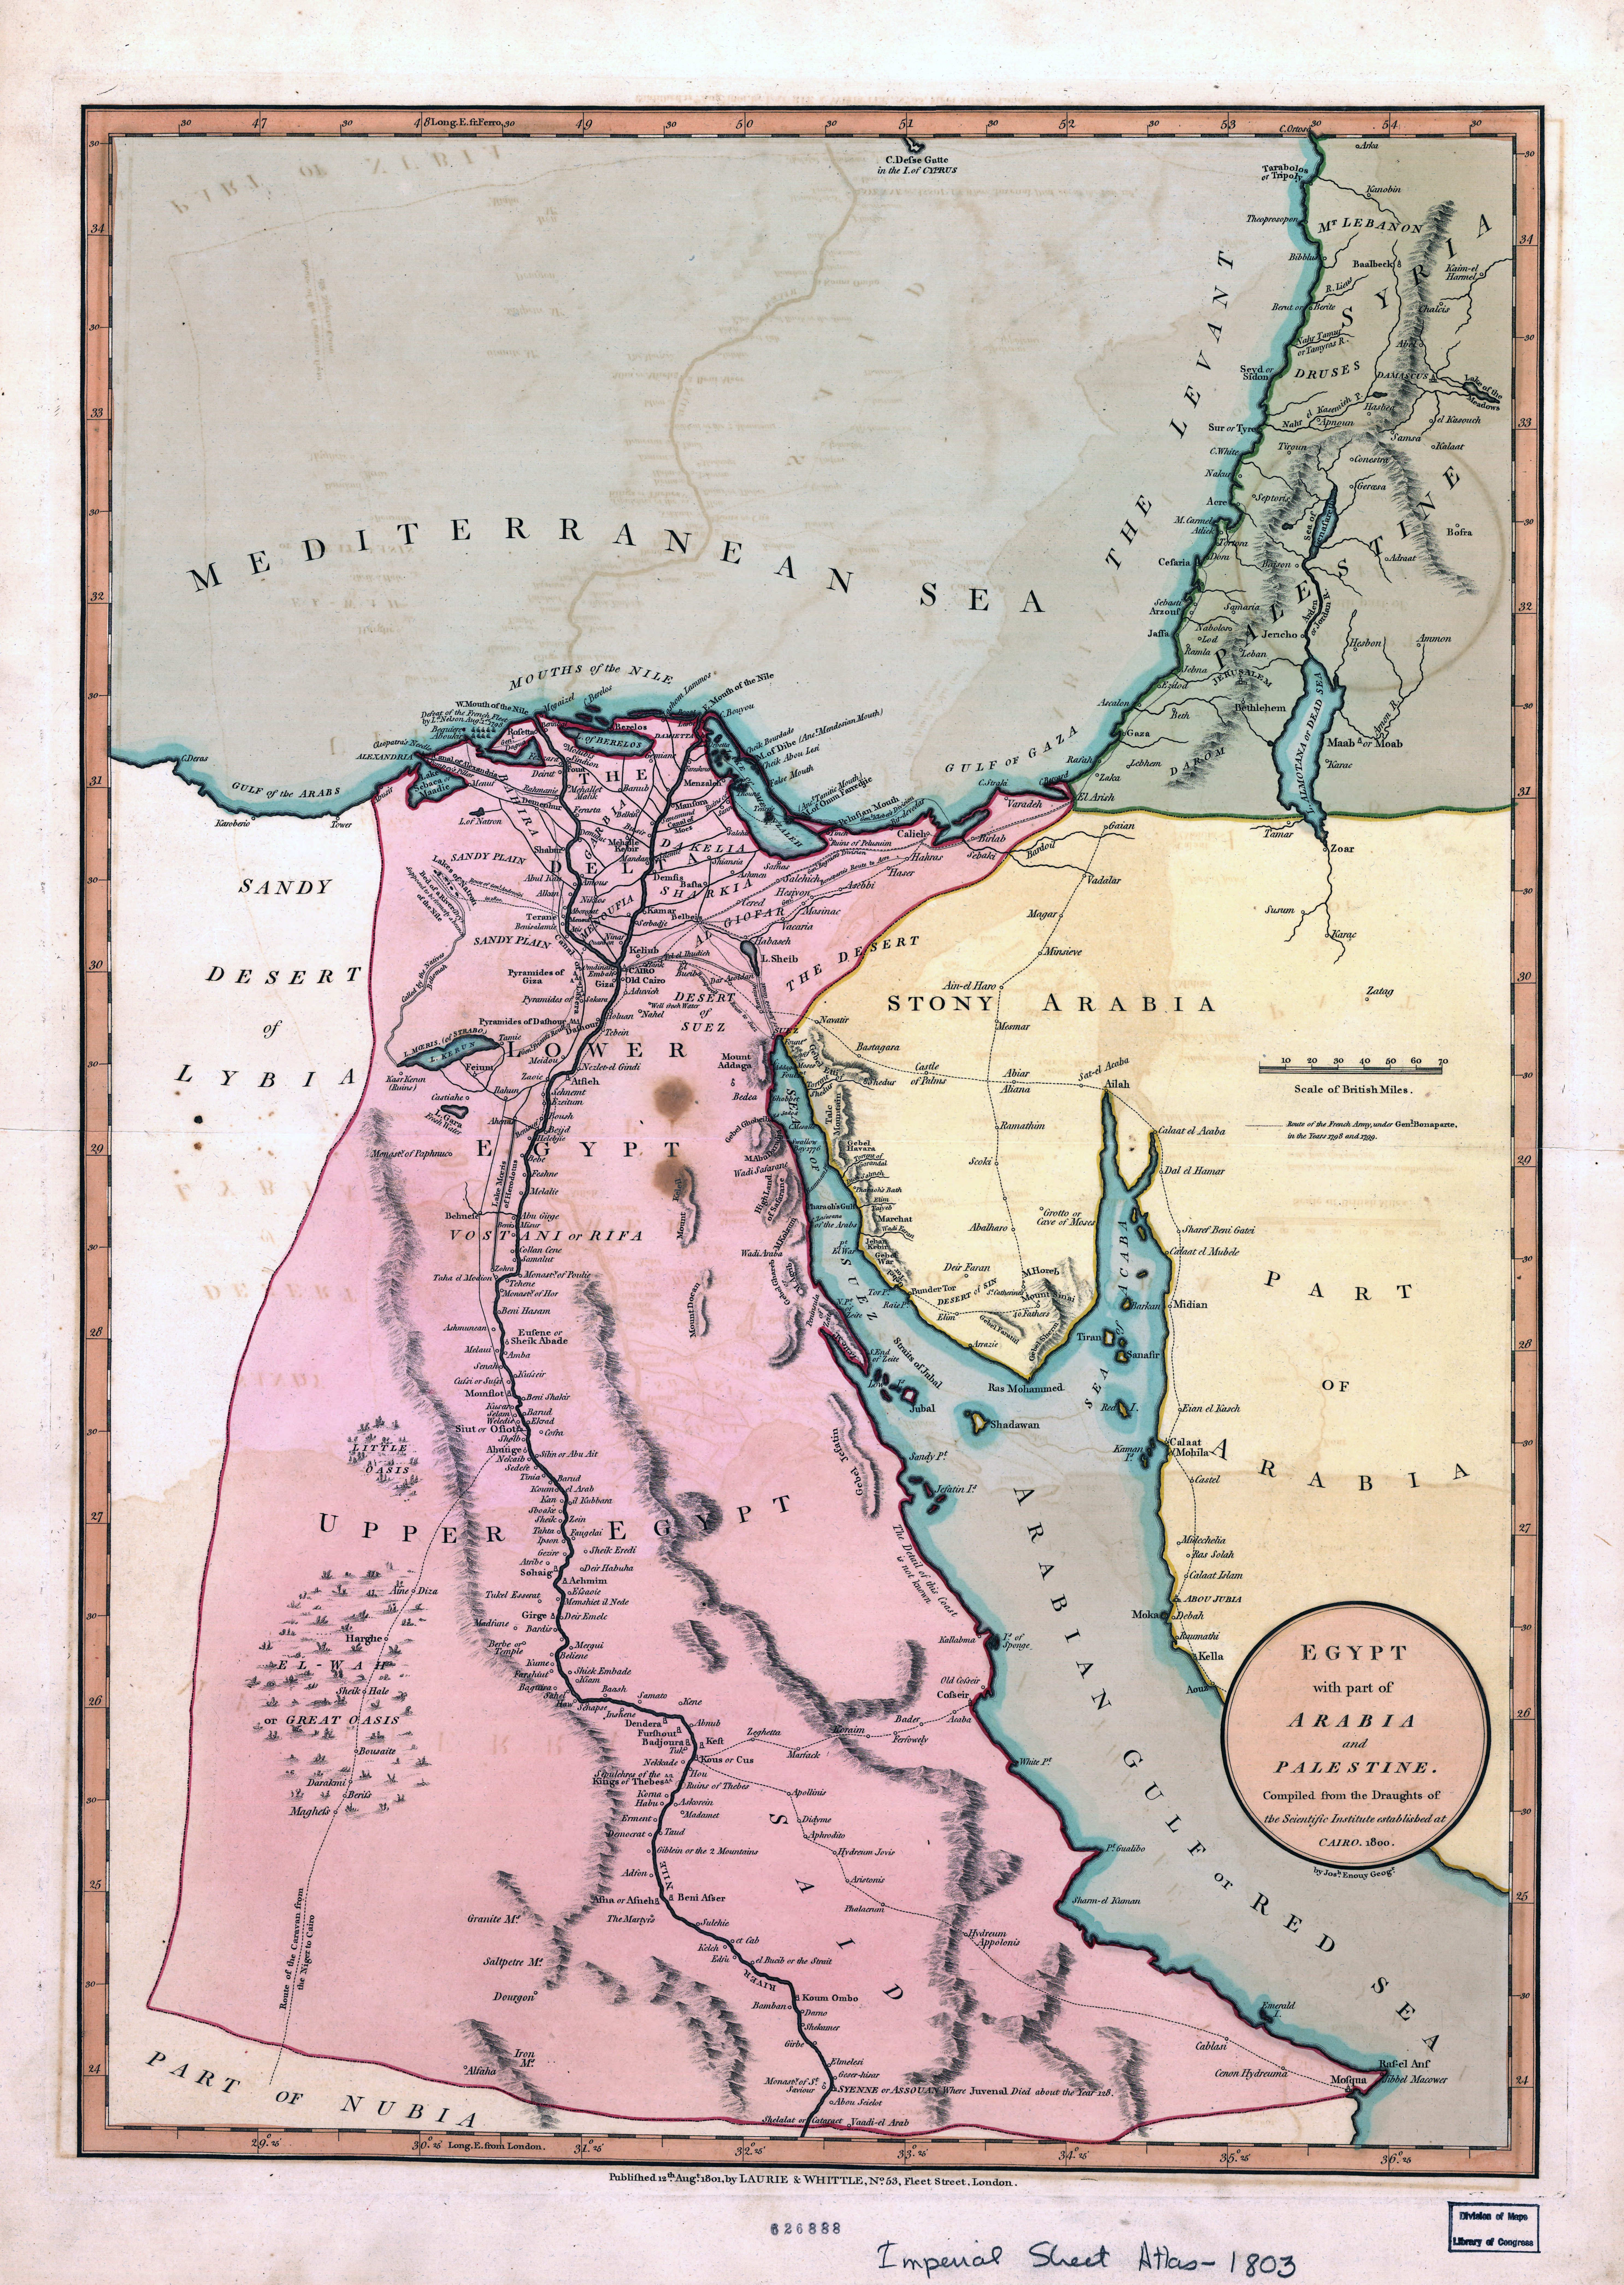 Large scale old map of Egypt with part of Arabia and Palestine – Map of Arabia